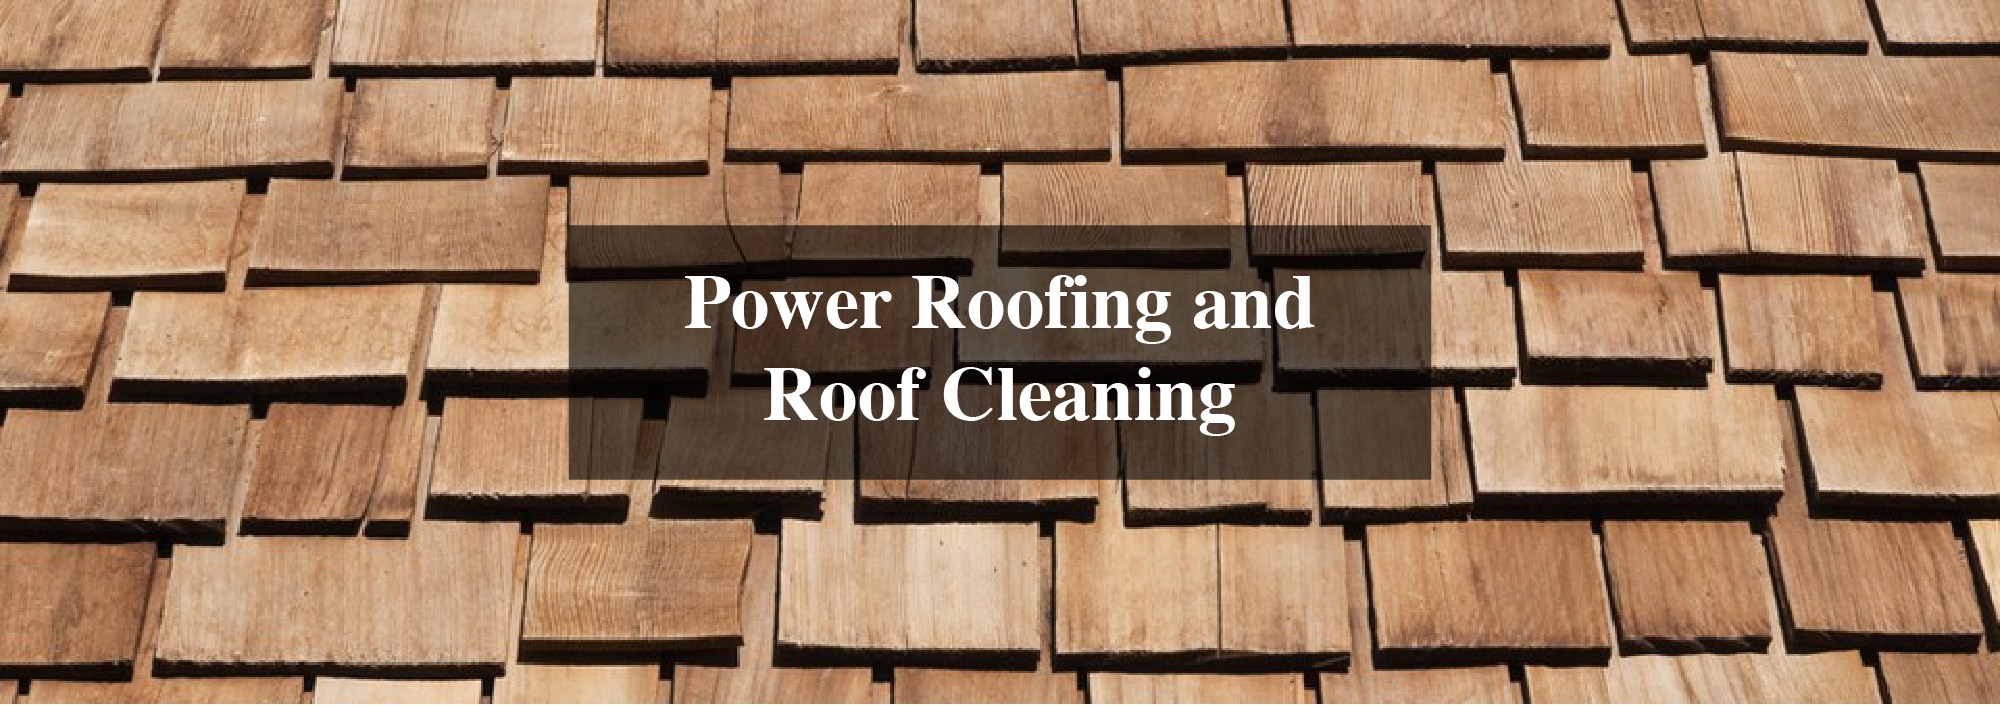 Roof Cleaning Portland OR